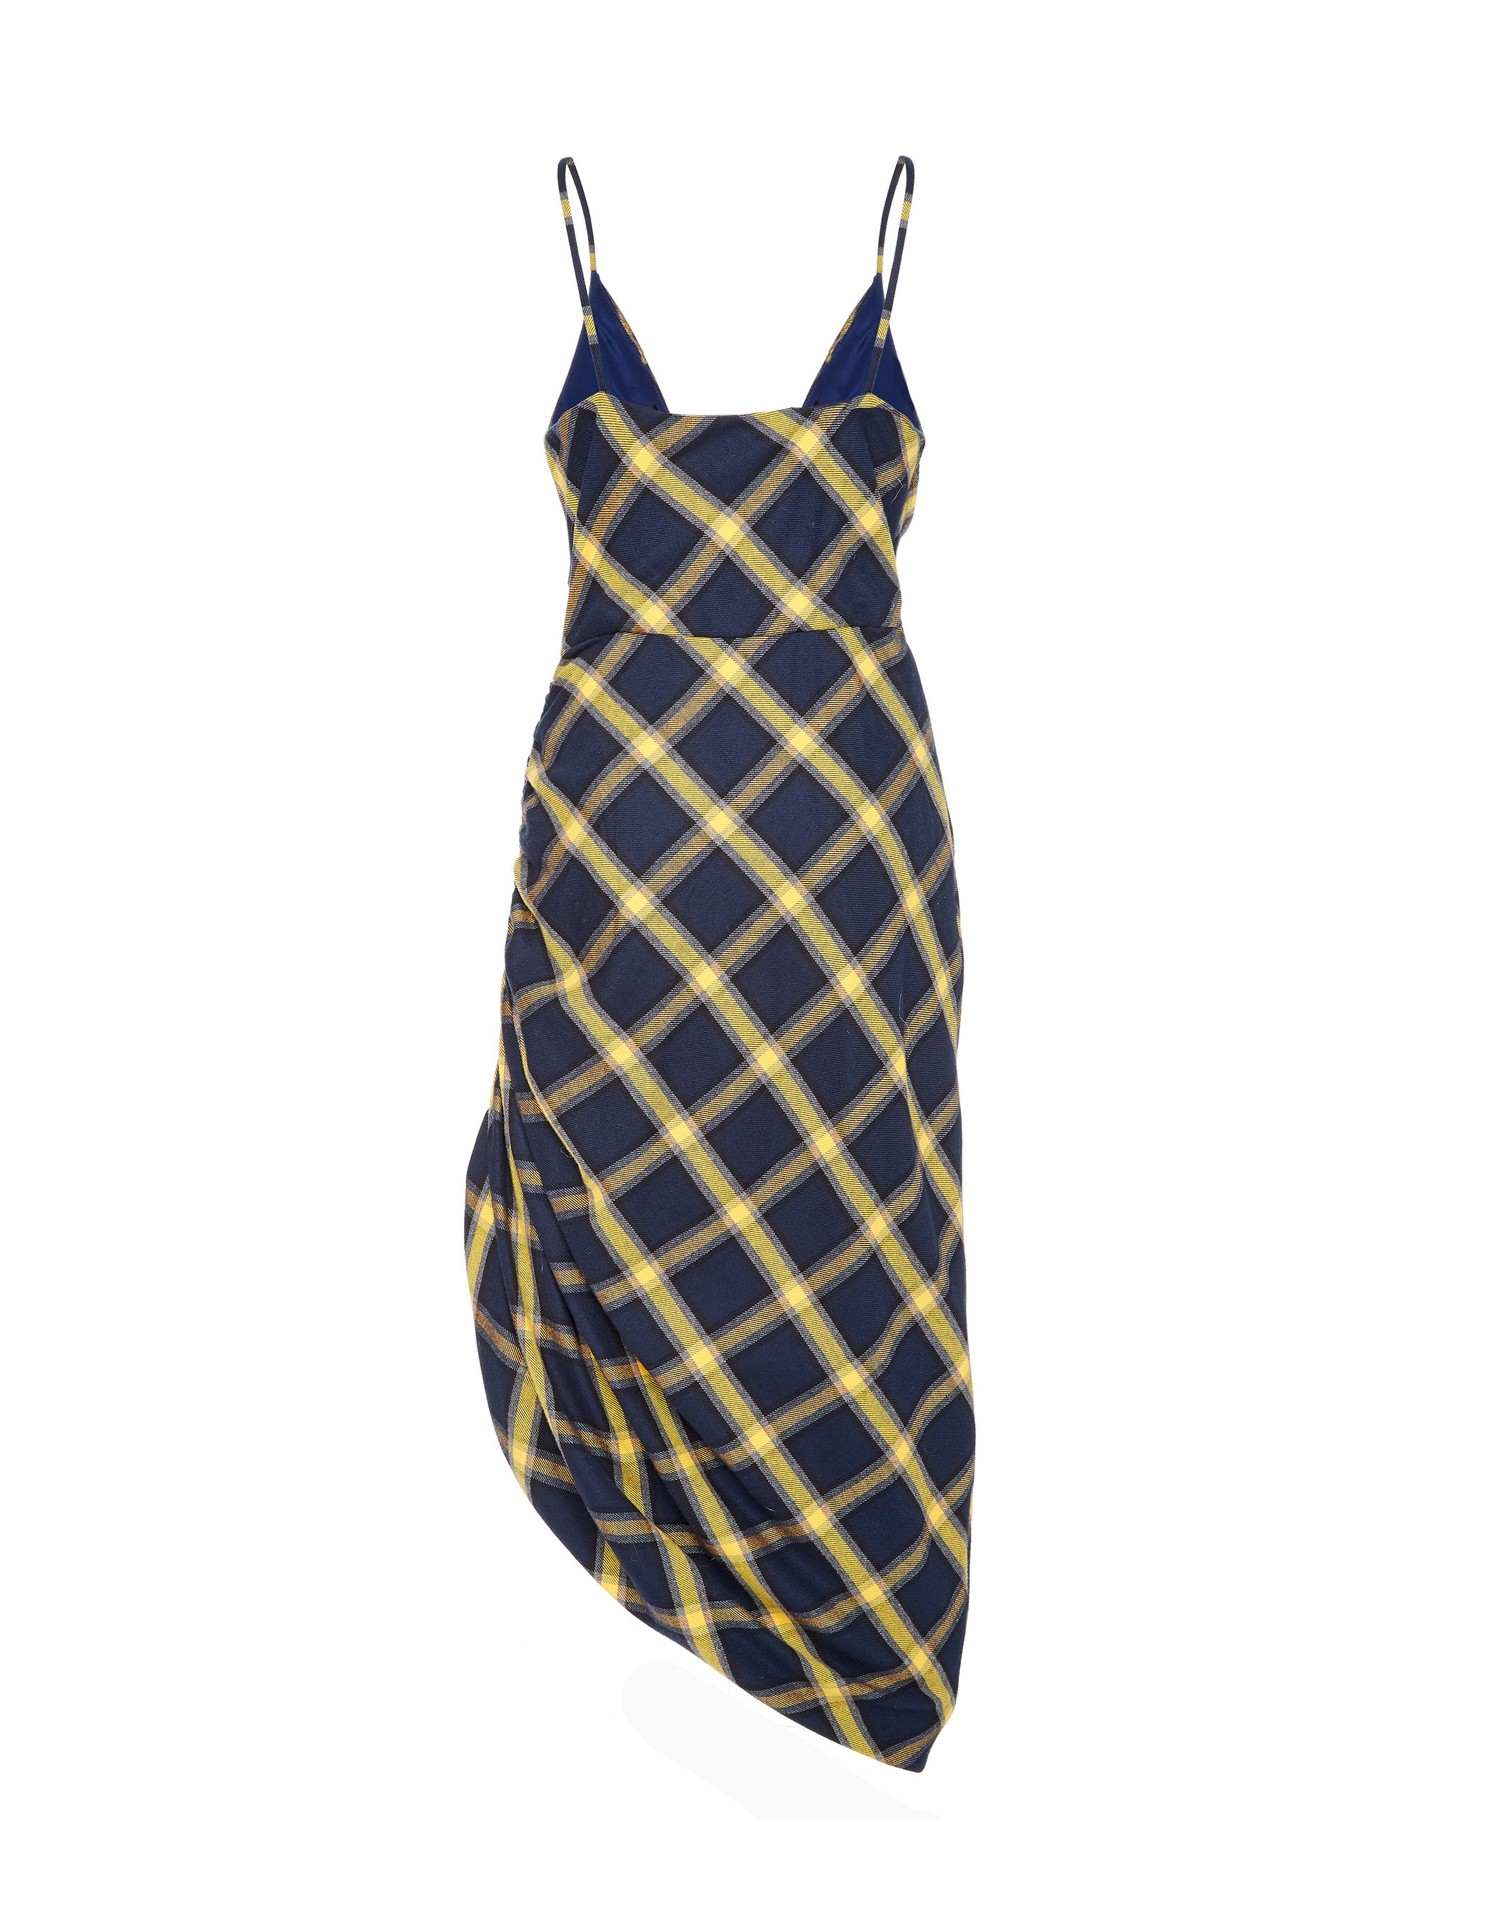 MONSE Twisted Plaid Slip Dress in Midnight and Yellow Flat Back